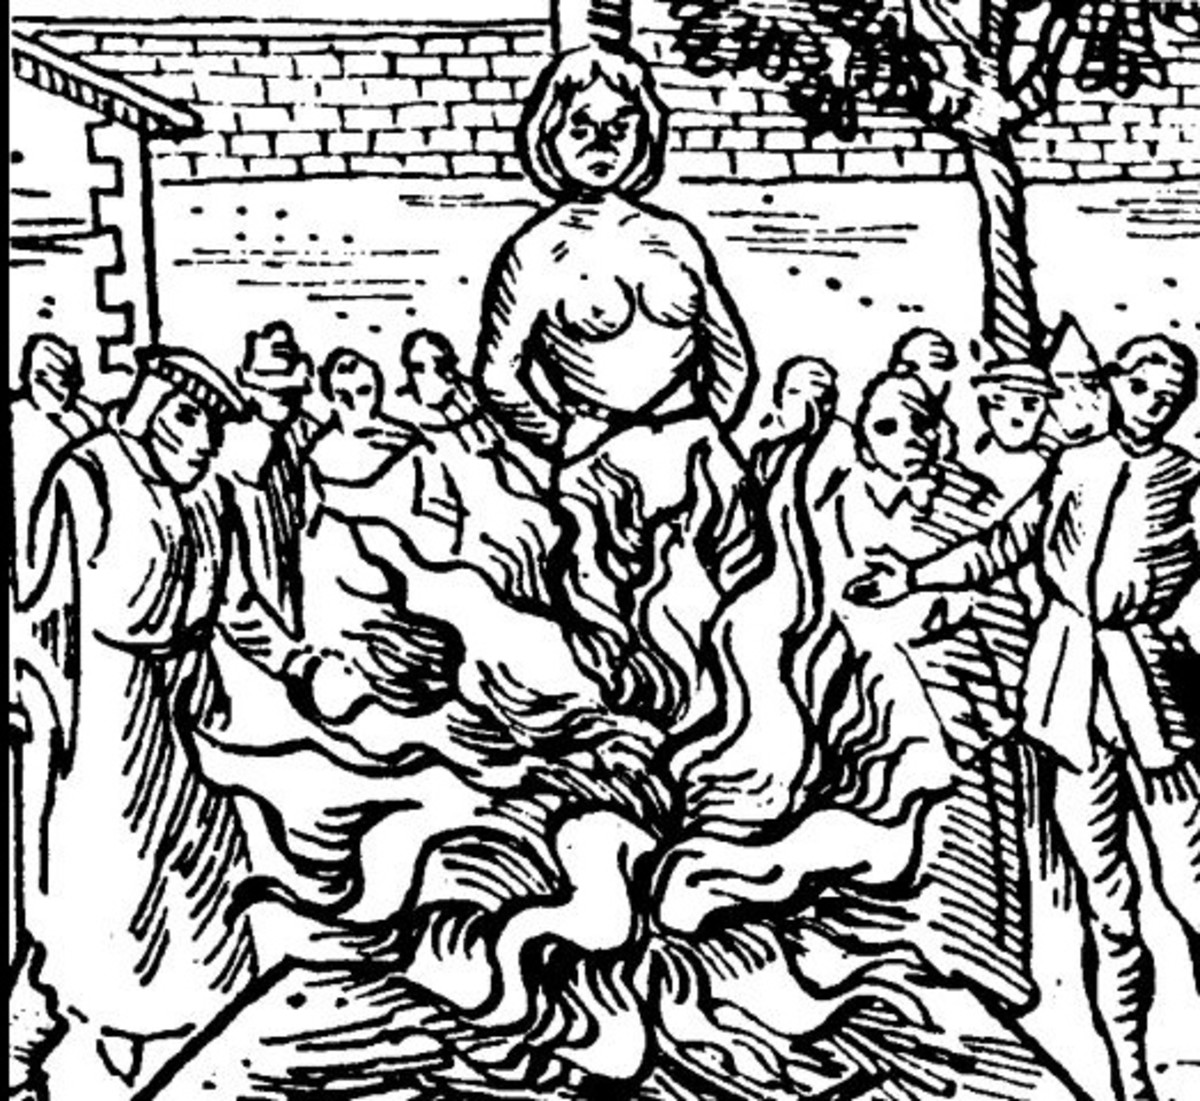 elizabethan witch hunts